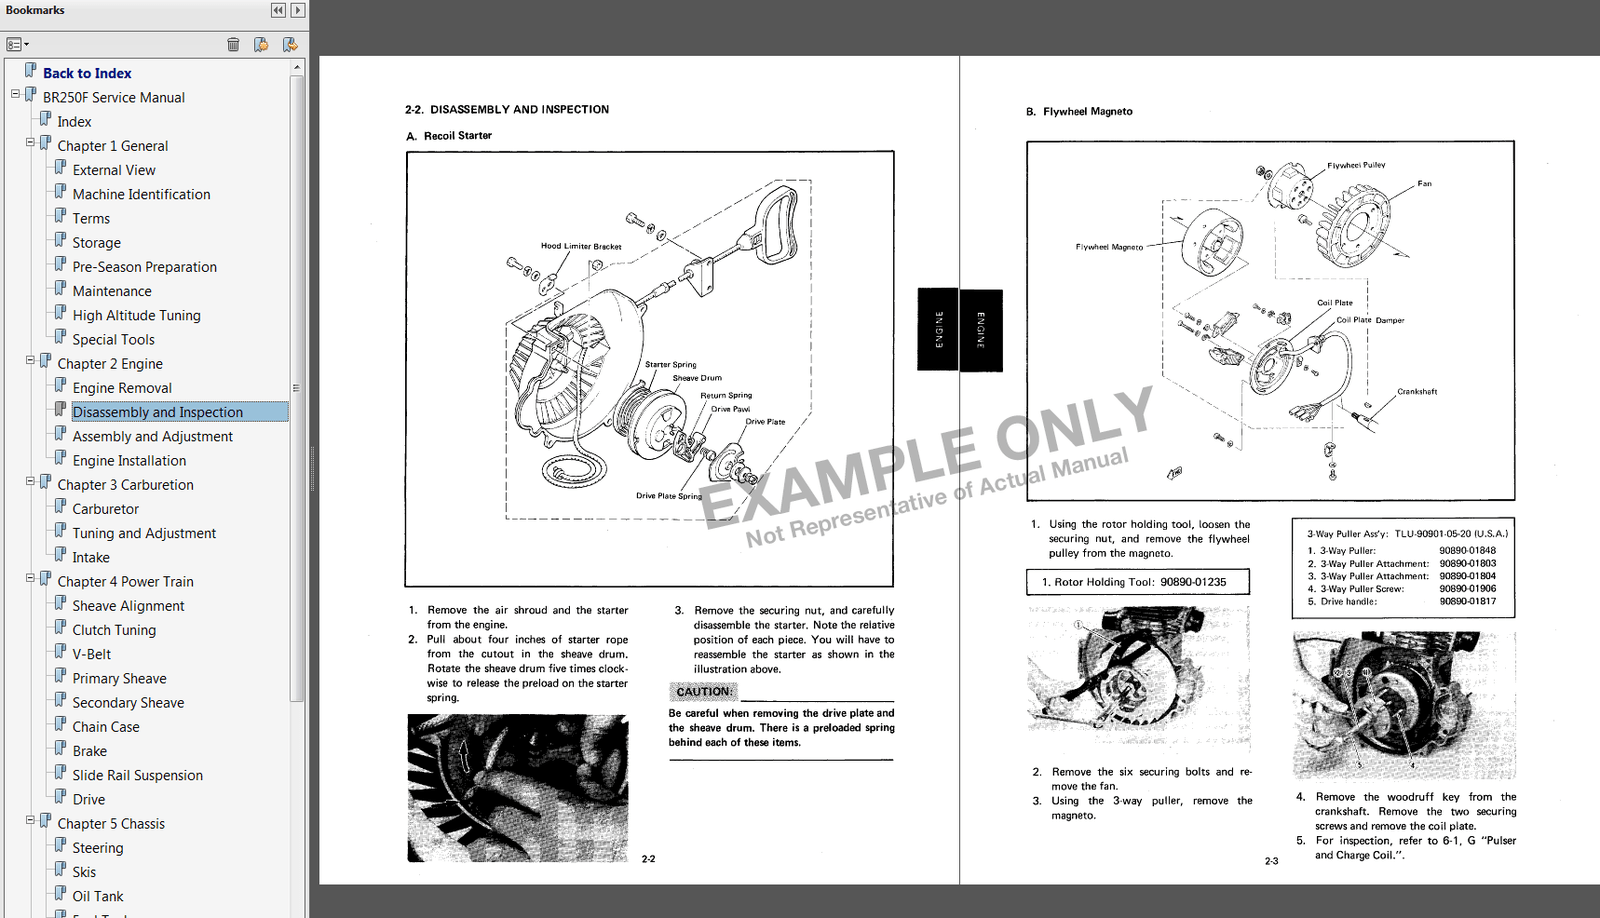 1982-2011 Yamaha Bravo/Bravo LT Snowmobile Service Manual